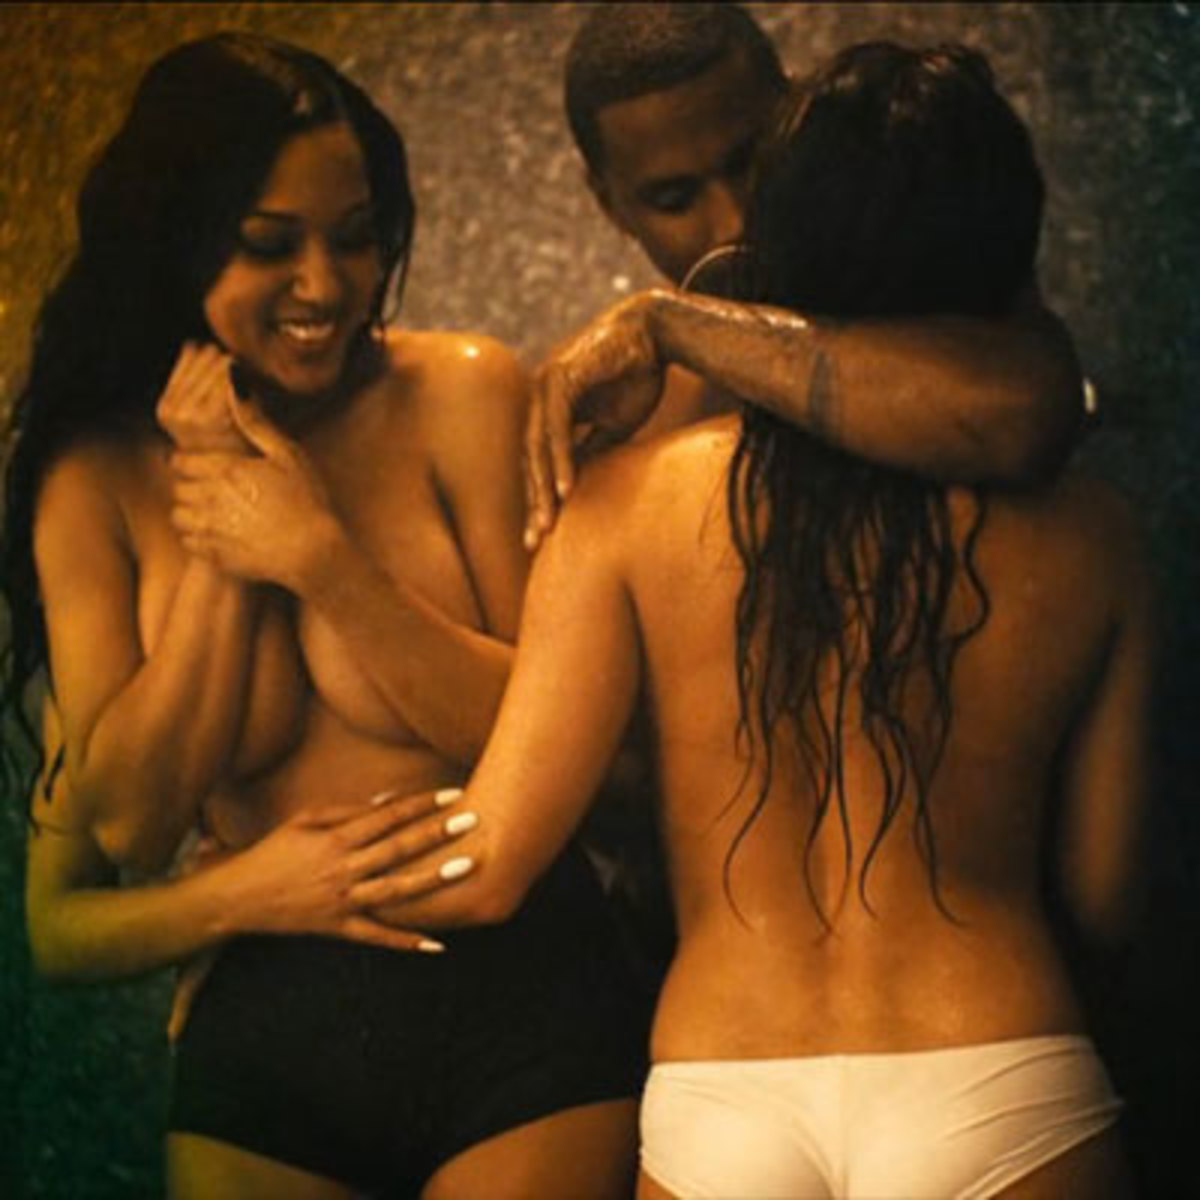 trey-songz-woman1.jpg